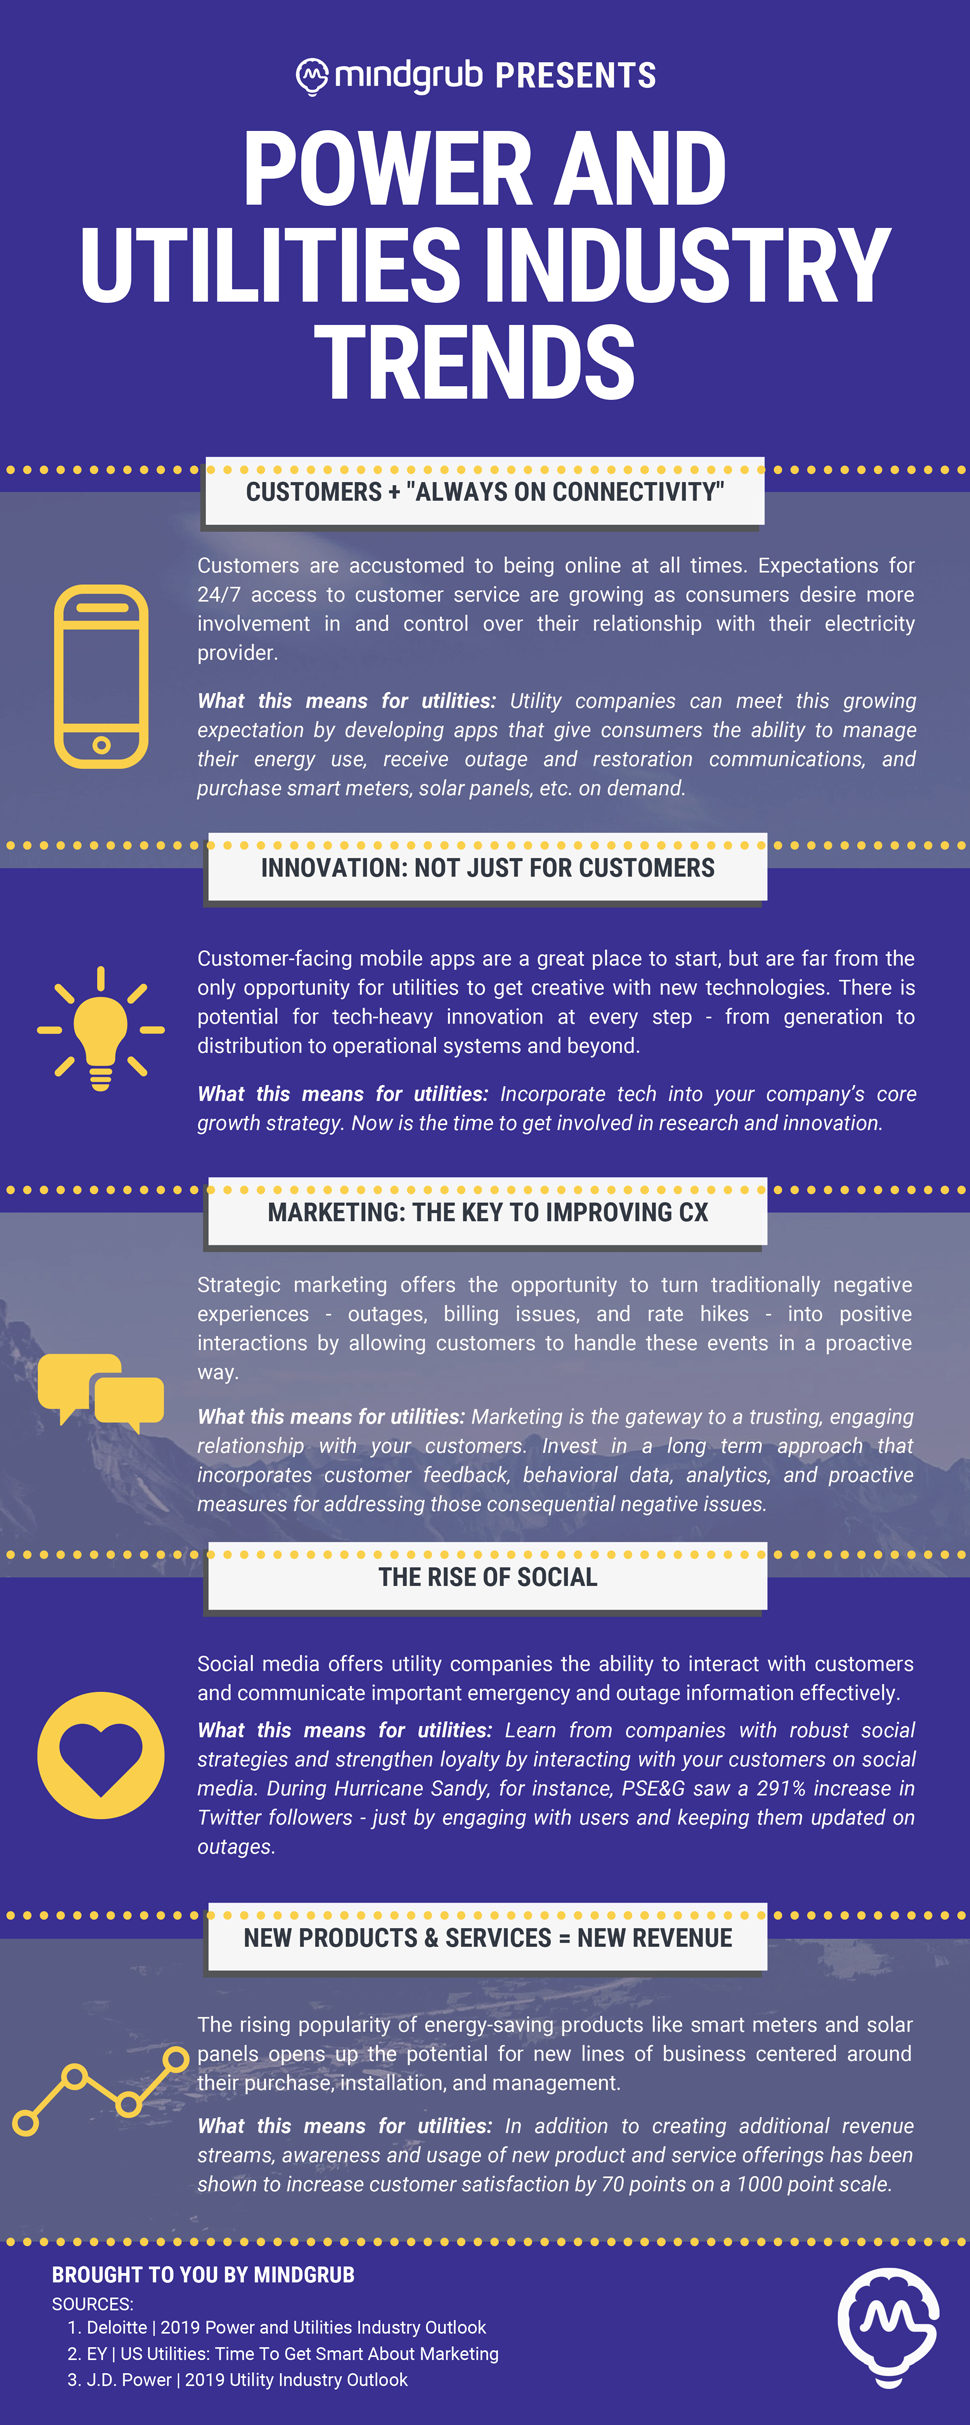 "An infographic highlighting: ""Customers + ""Always on Connectivity,"""" ""Innovation: Not Just For Customers,"" ""Marketing: The Key to Improving CX,""  ""The Rise of Social,"" and ""New Products & Services = New Revenue"""